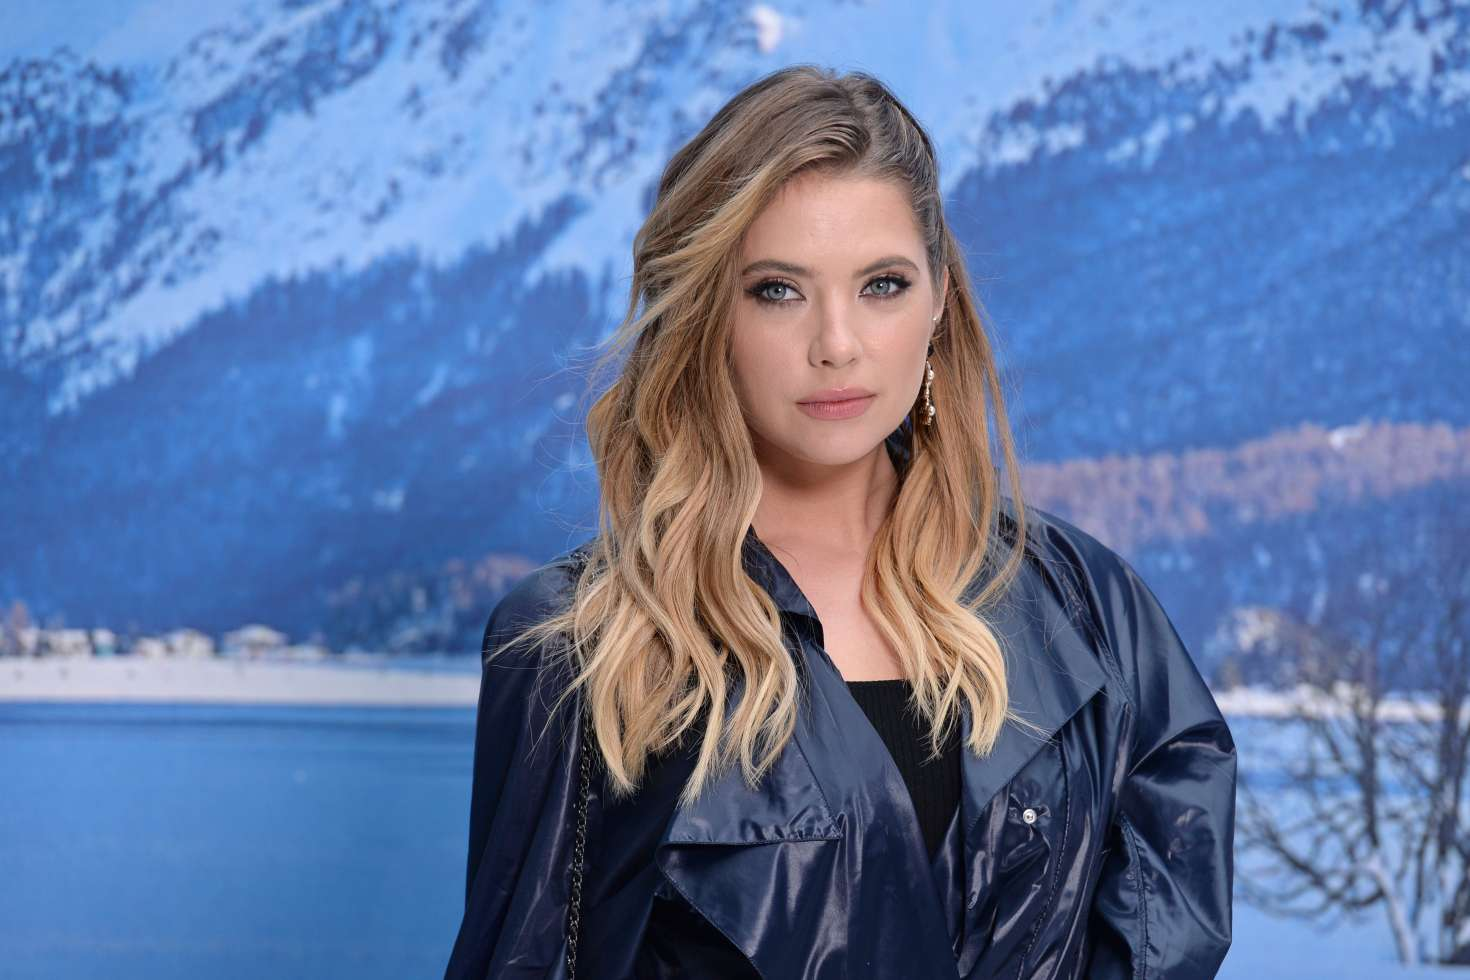 Ashley Benson - celebrity at the Chanel Fashion Show, 2019